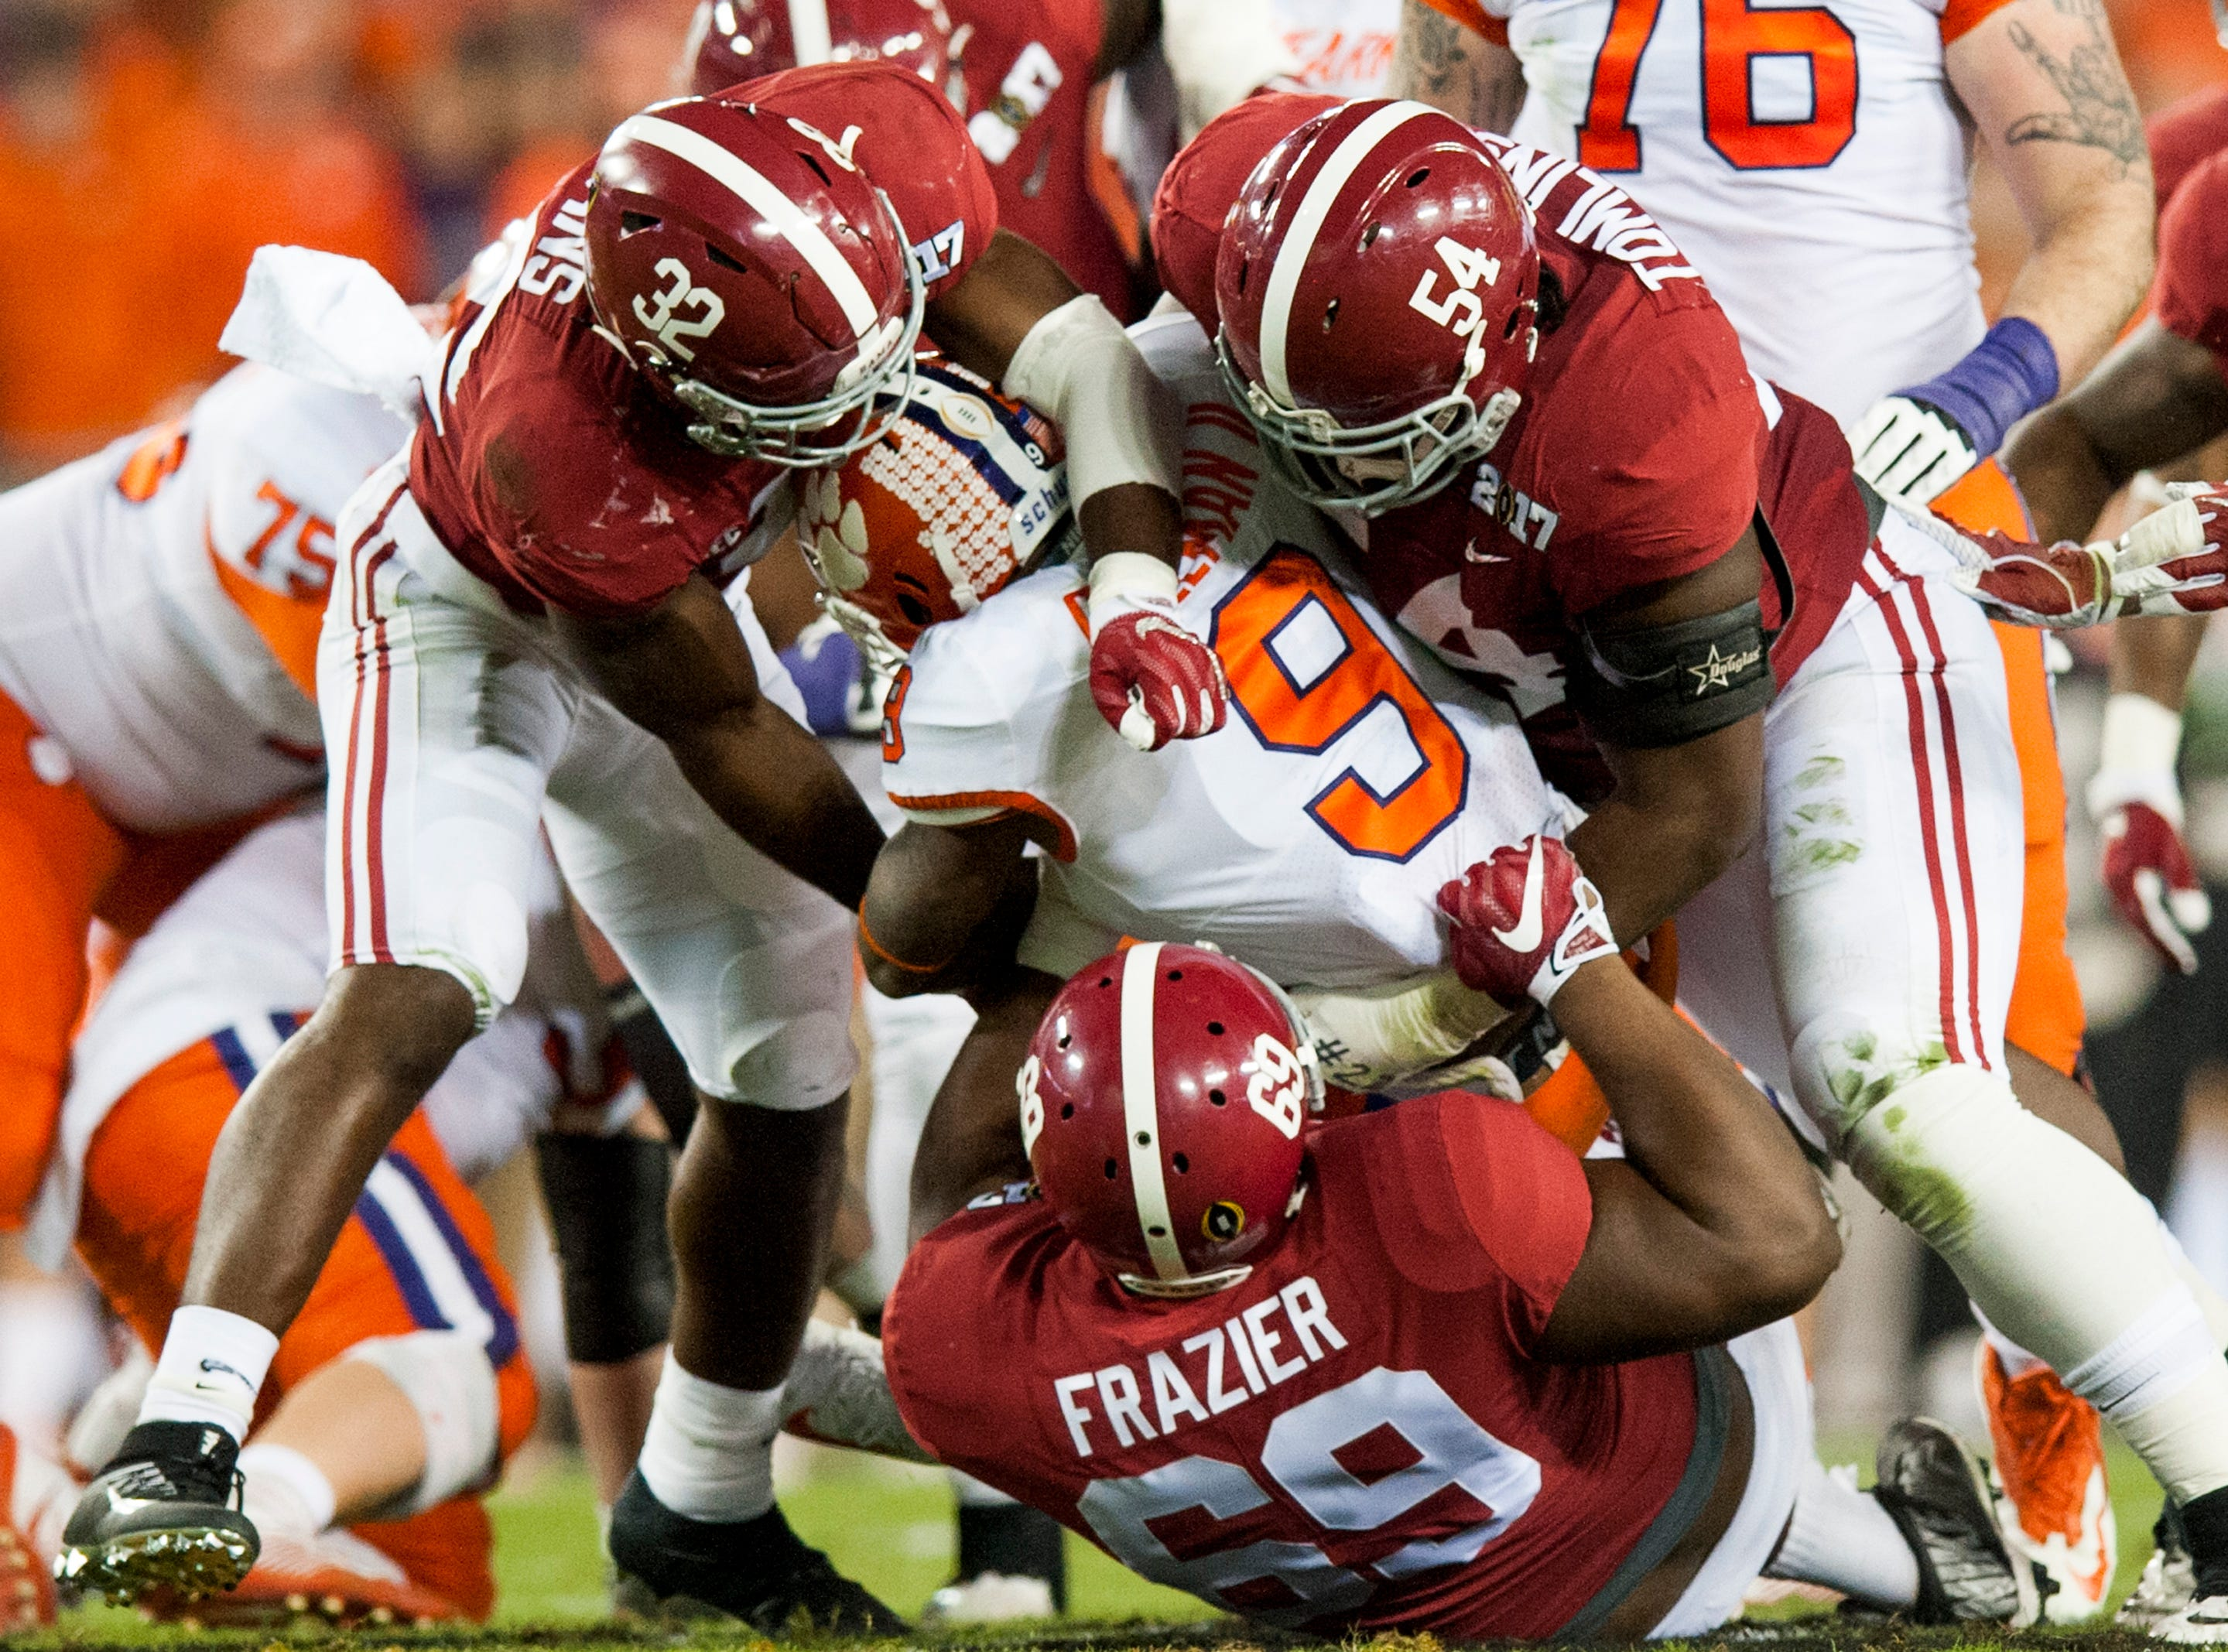 Clemson running back Wayne Gallman (9) is tackled by Alabama linebacker Rashaan Evans (32), defensive lineman Dalvin Tomlinson (54) and defensive lineman Joshua Frazier (69) in first half action of the College Football Playoff National Championship Game at Raymond James Stadium in Tampa, Fla. on Monday January 9, 2017.